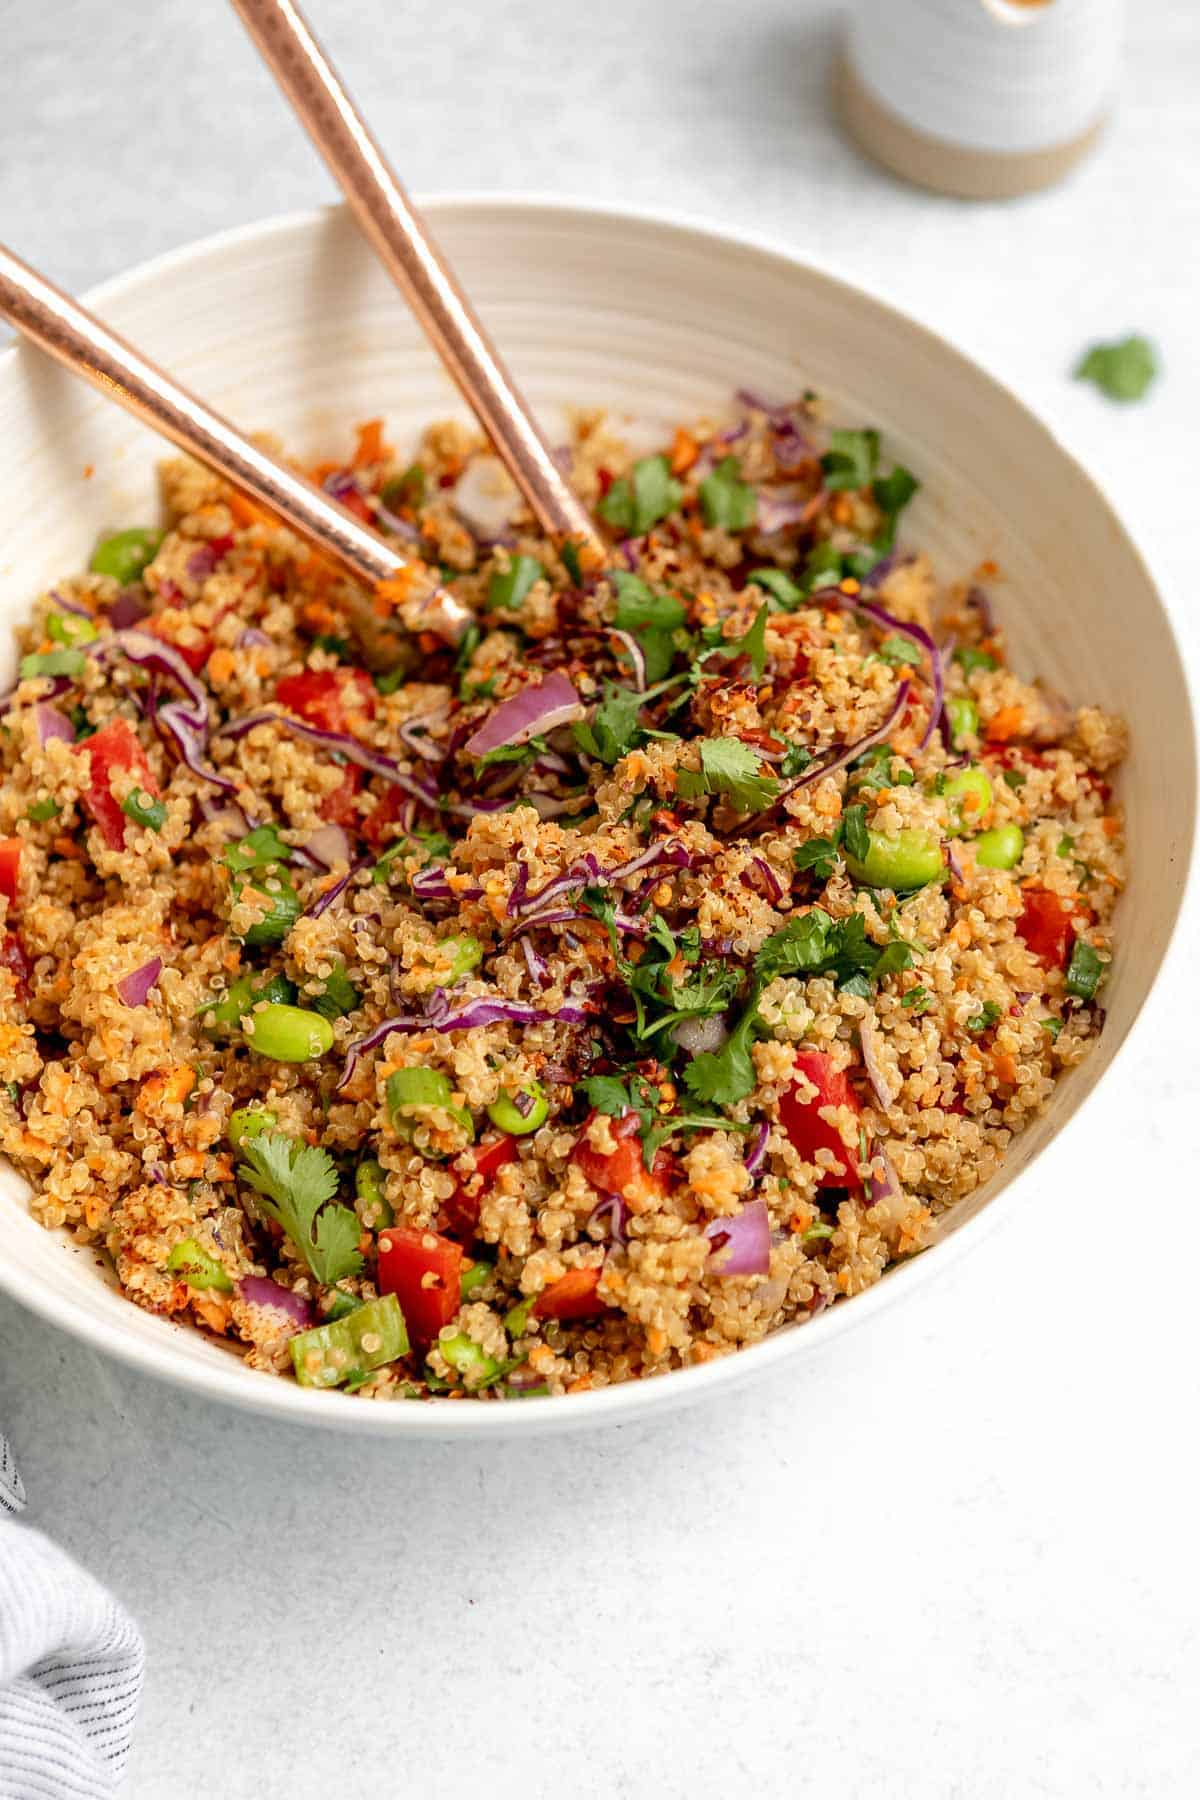 vegan quinoa salad with peanut sauce and vegetables in a white bowl